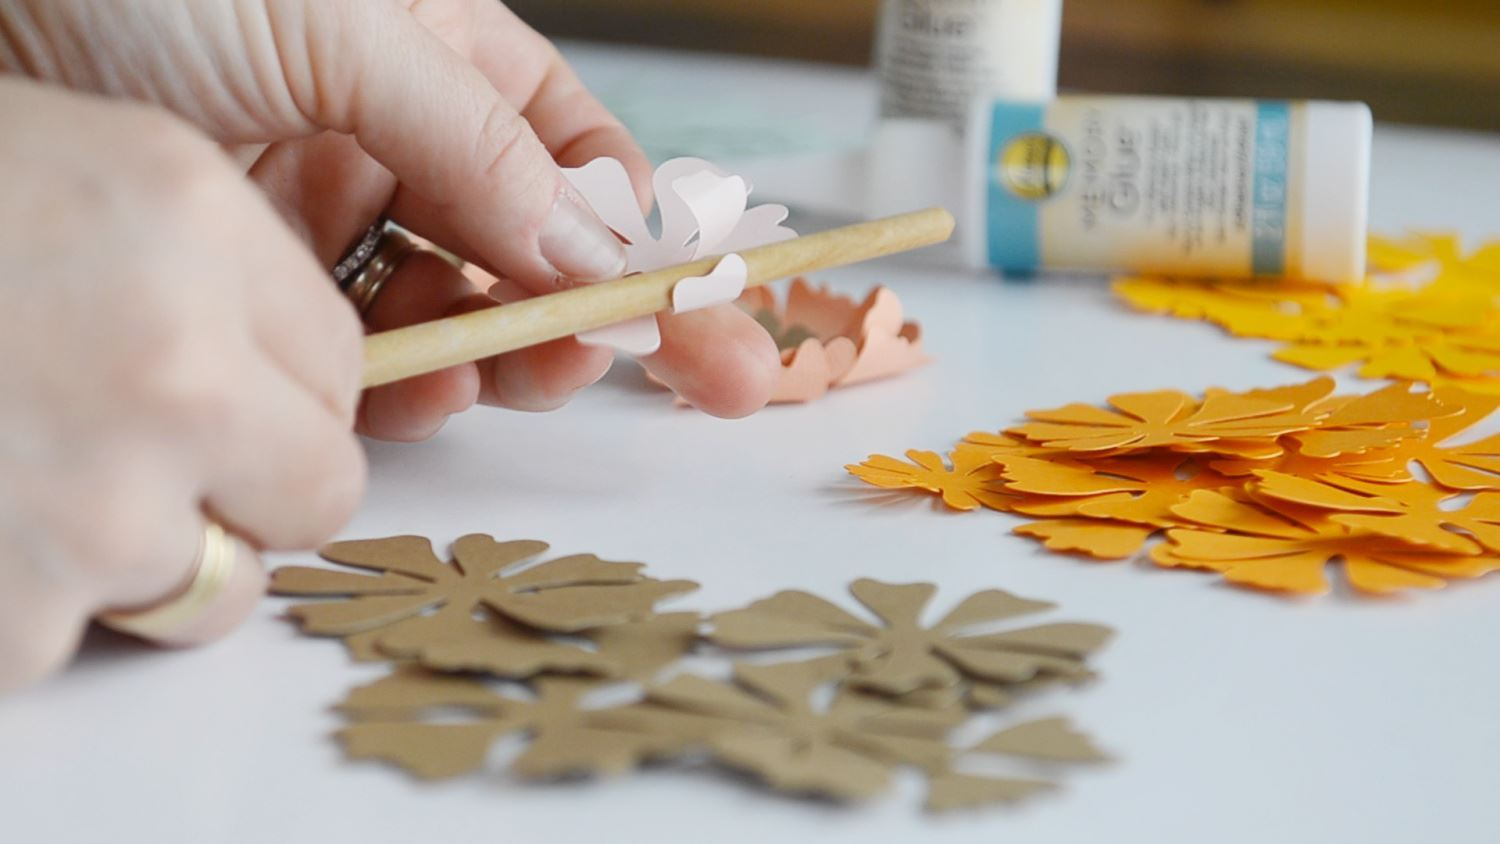 Use a pen to curl flower petals for dimension